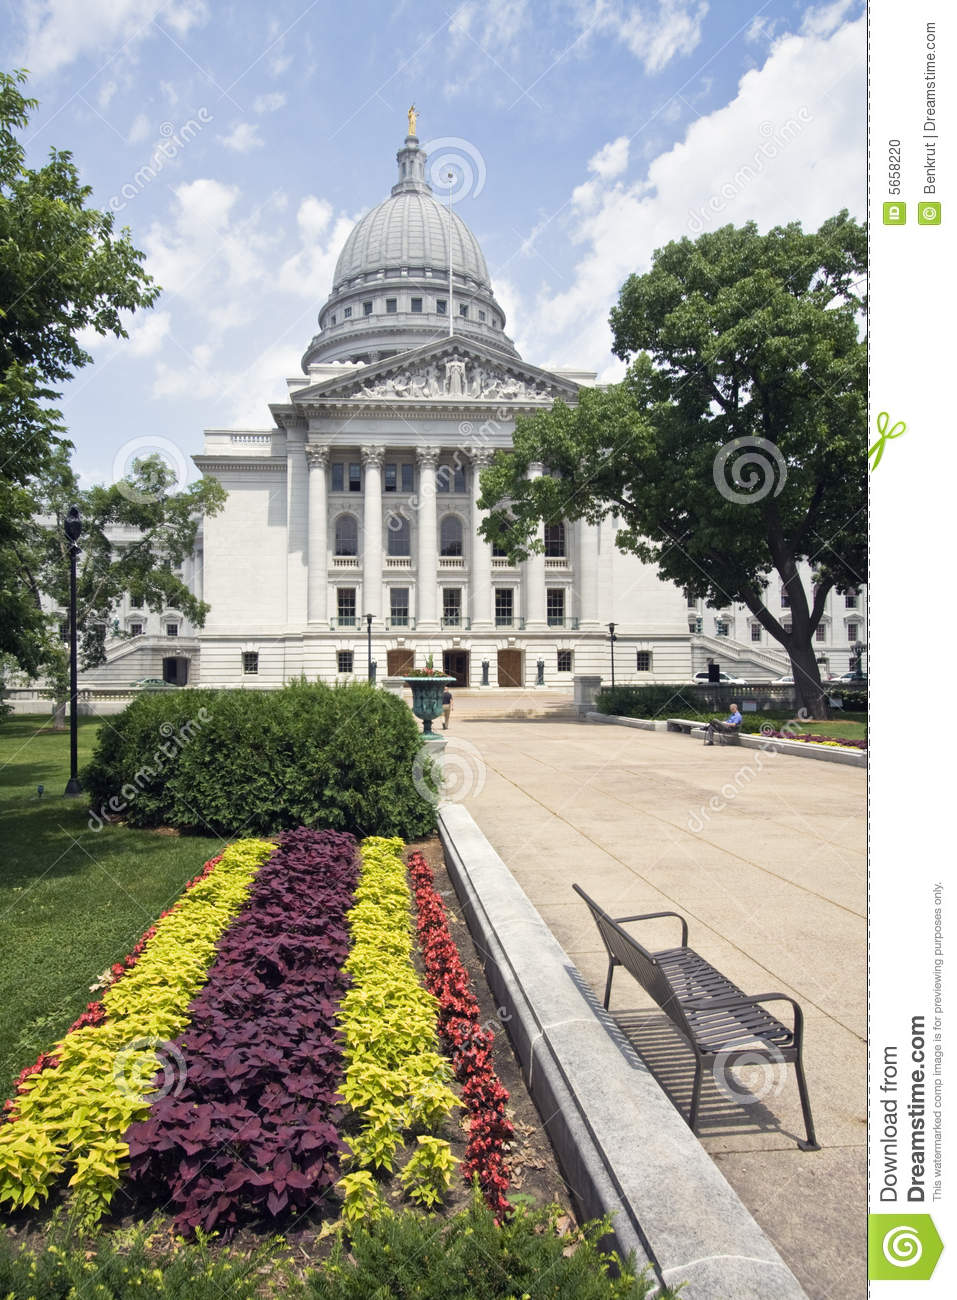 Best Place To View Madison Capitol Building